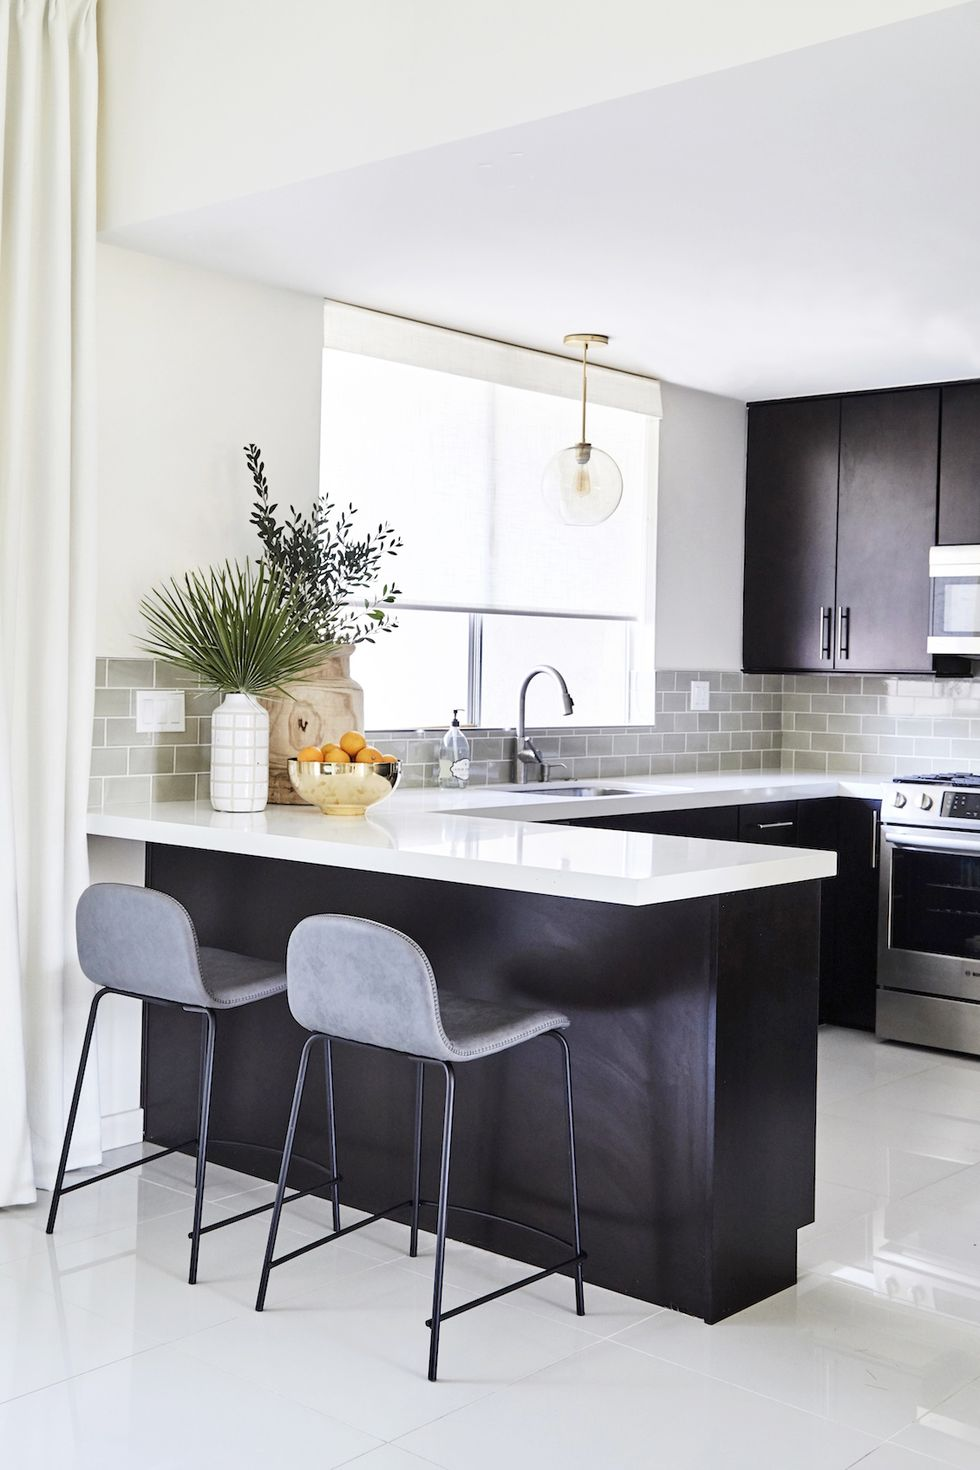 10 Modern Home Decorating Ideas That Ll Transform Any Traditional Space With Images: 10 Dramatic And Stylish Black Kitchen Ideas